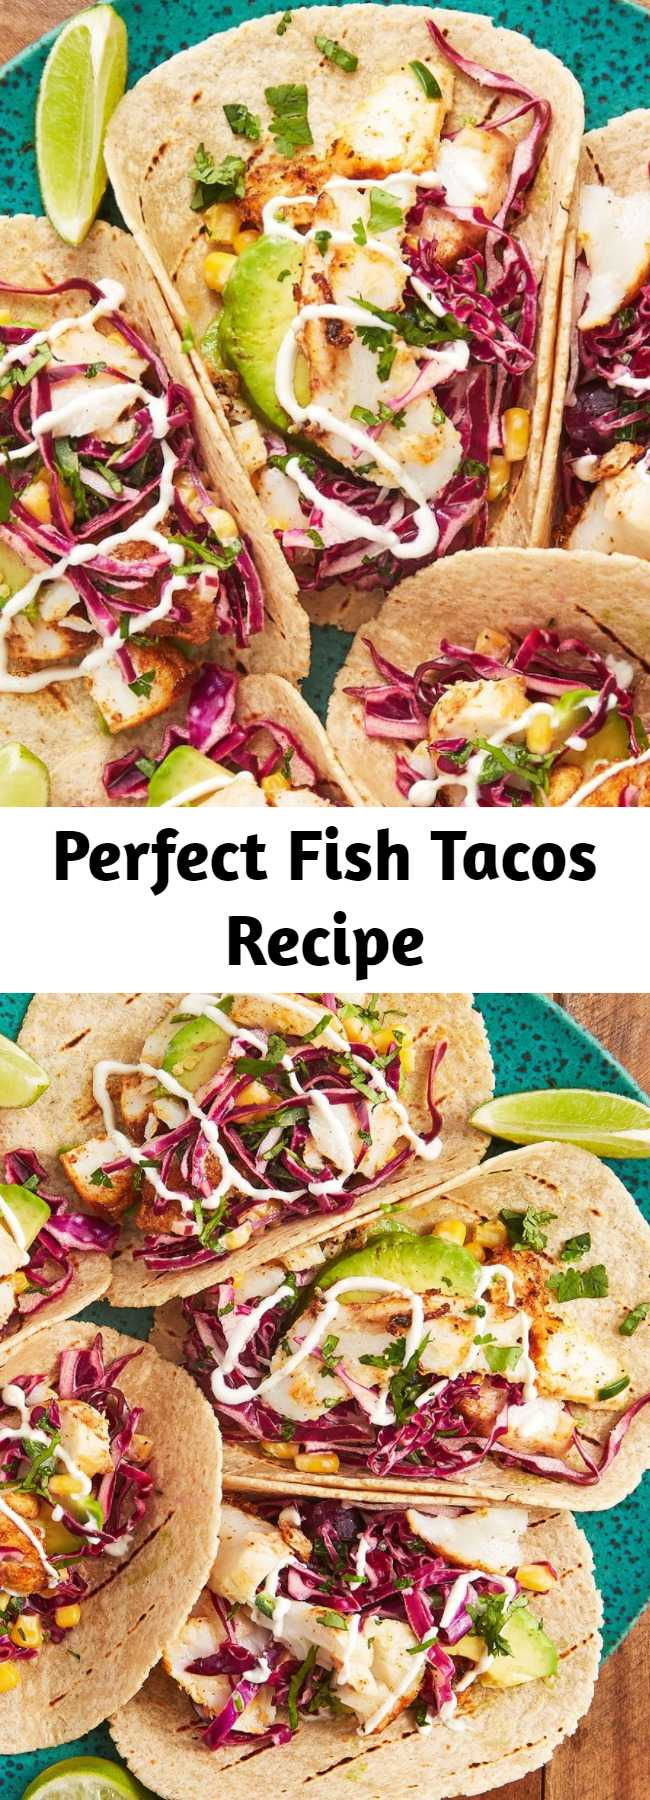 Perfect Fish Tacos Recipe - Love fish tacos? Well, these are the end-all be-all. People can be intimidated by cooking fish for tacos, but don't be! After marinating, the fish just needs to cook in a glug of olive oil for a few minutes per side in a skillet. Let the fish rest a few minutes before using a fork to flake it into pieces.